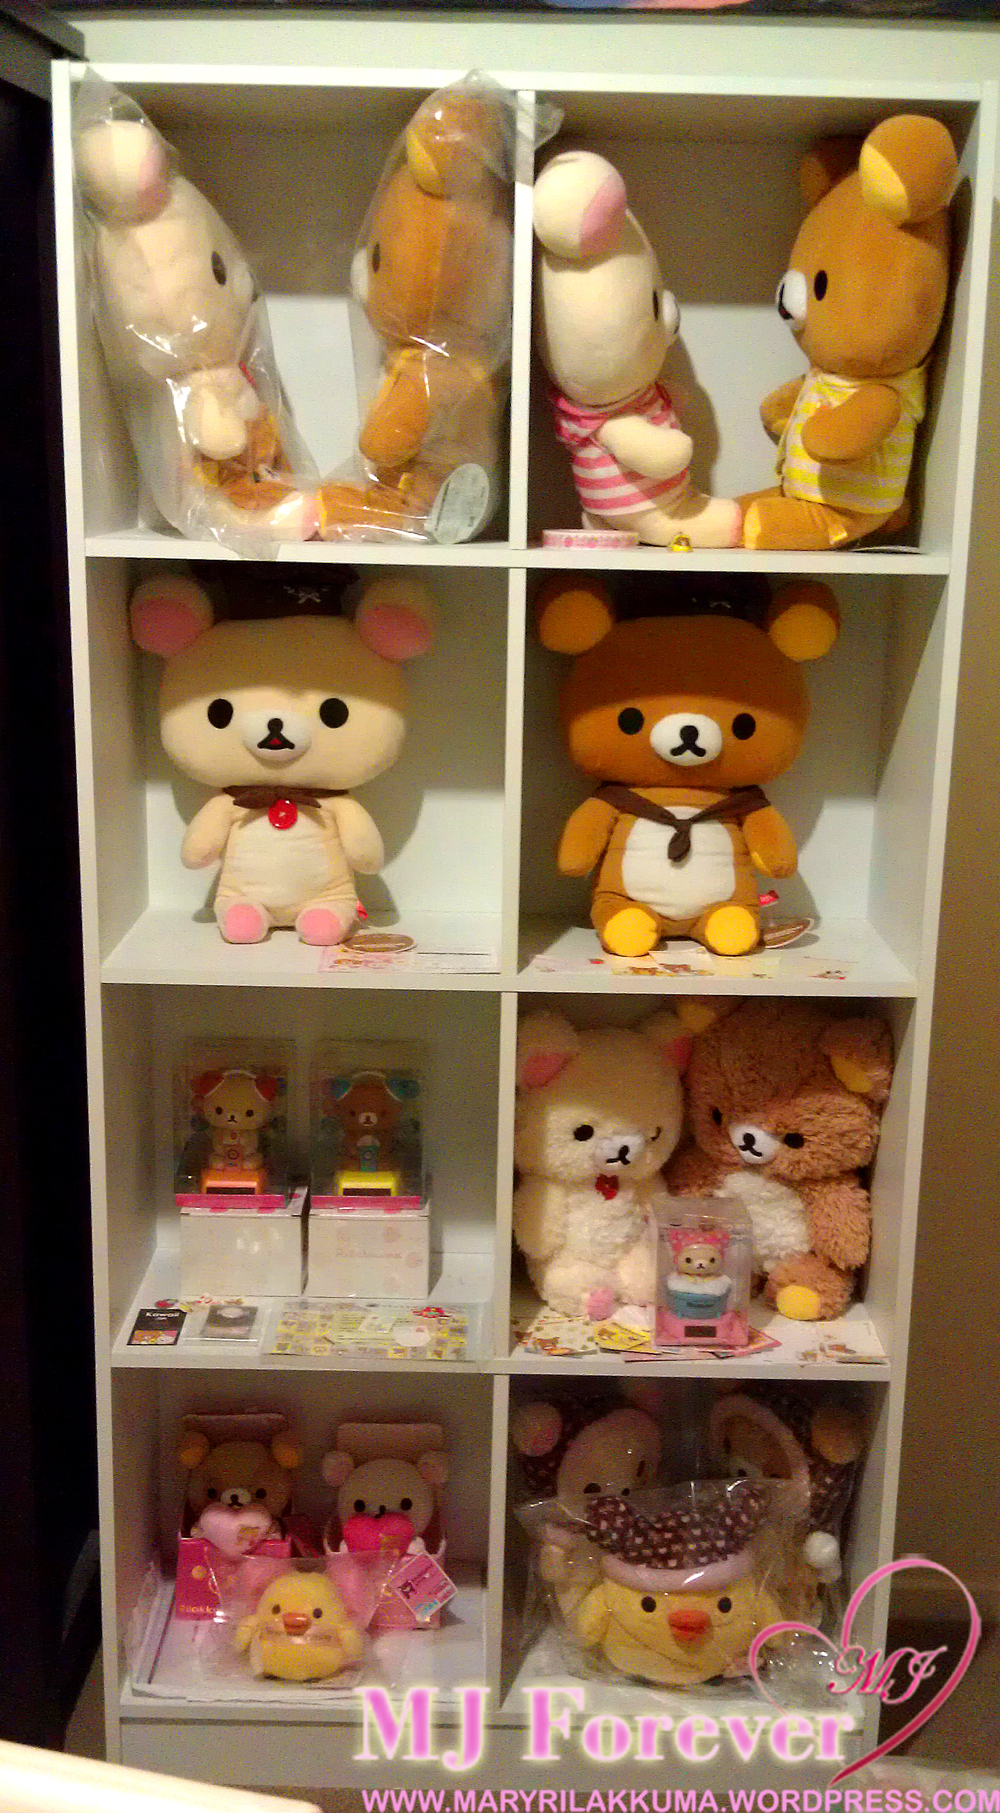 Rilakkuma collection shelf #2